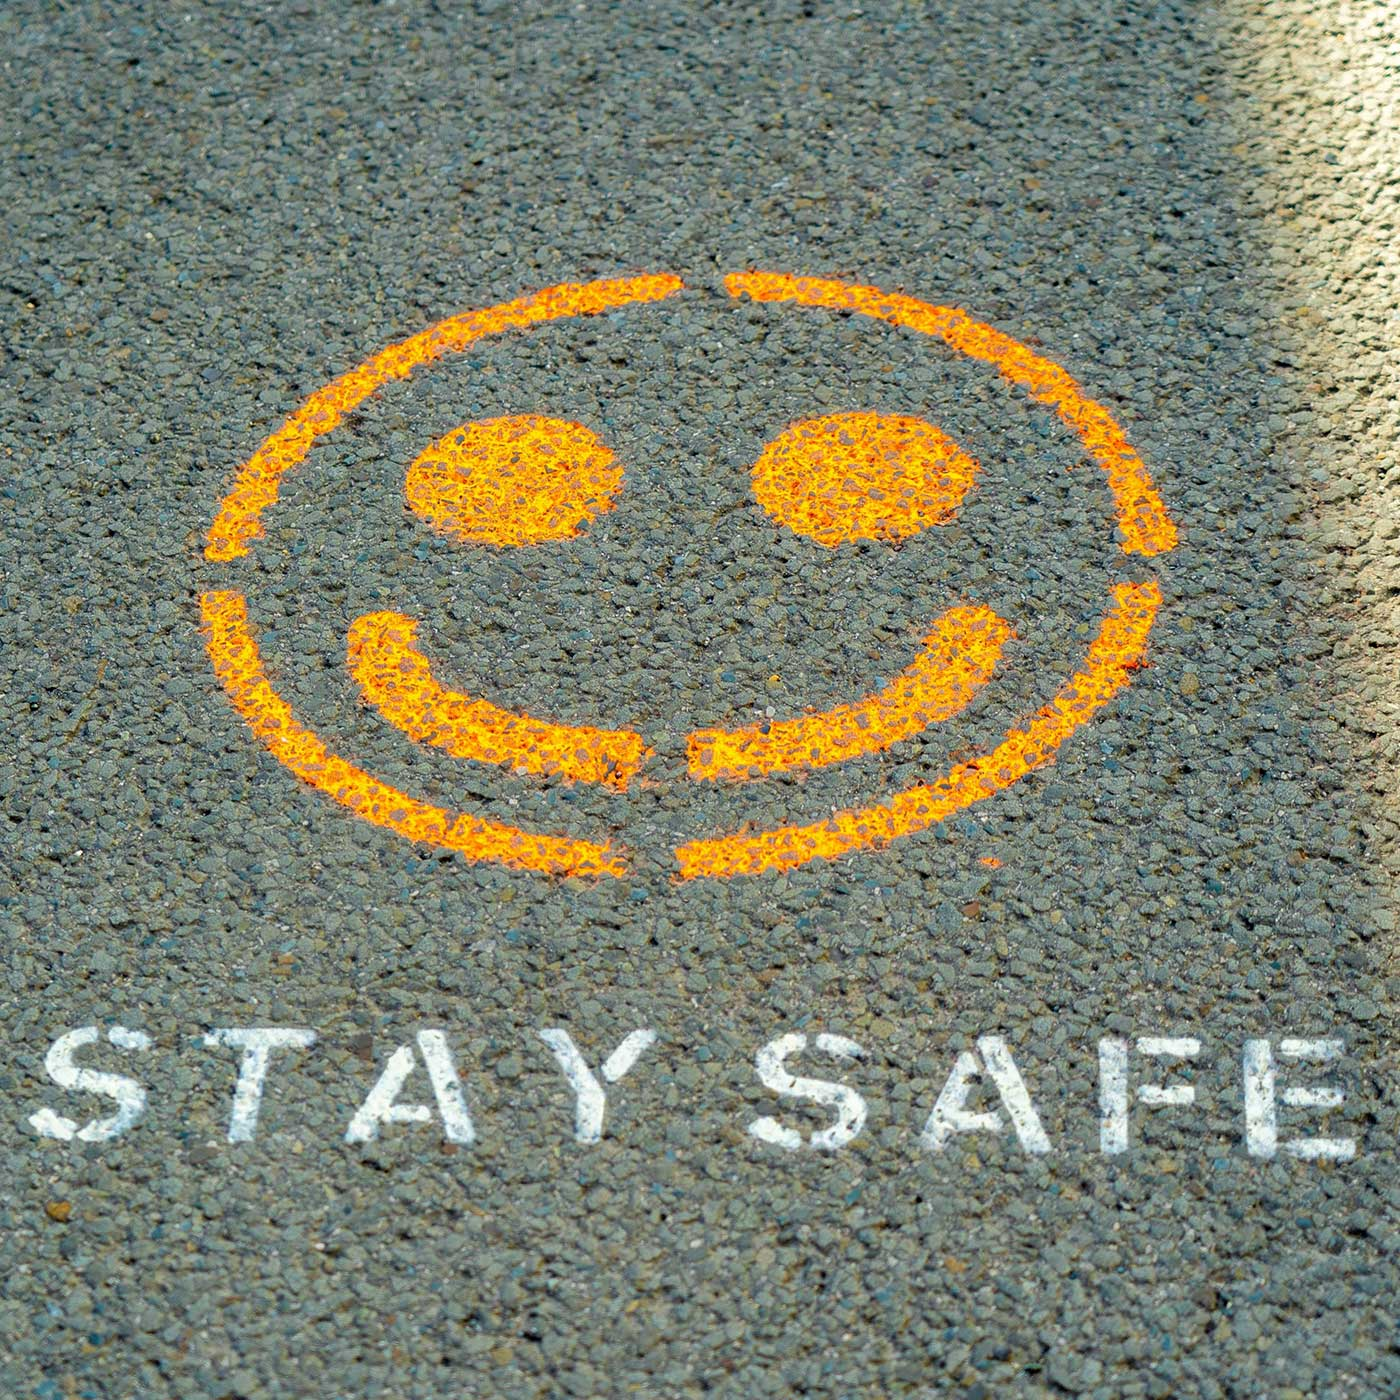 Stay safe message and smiley face image